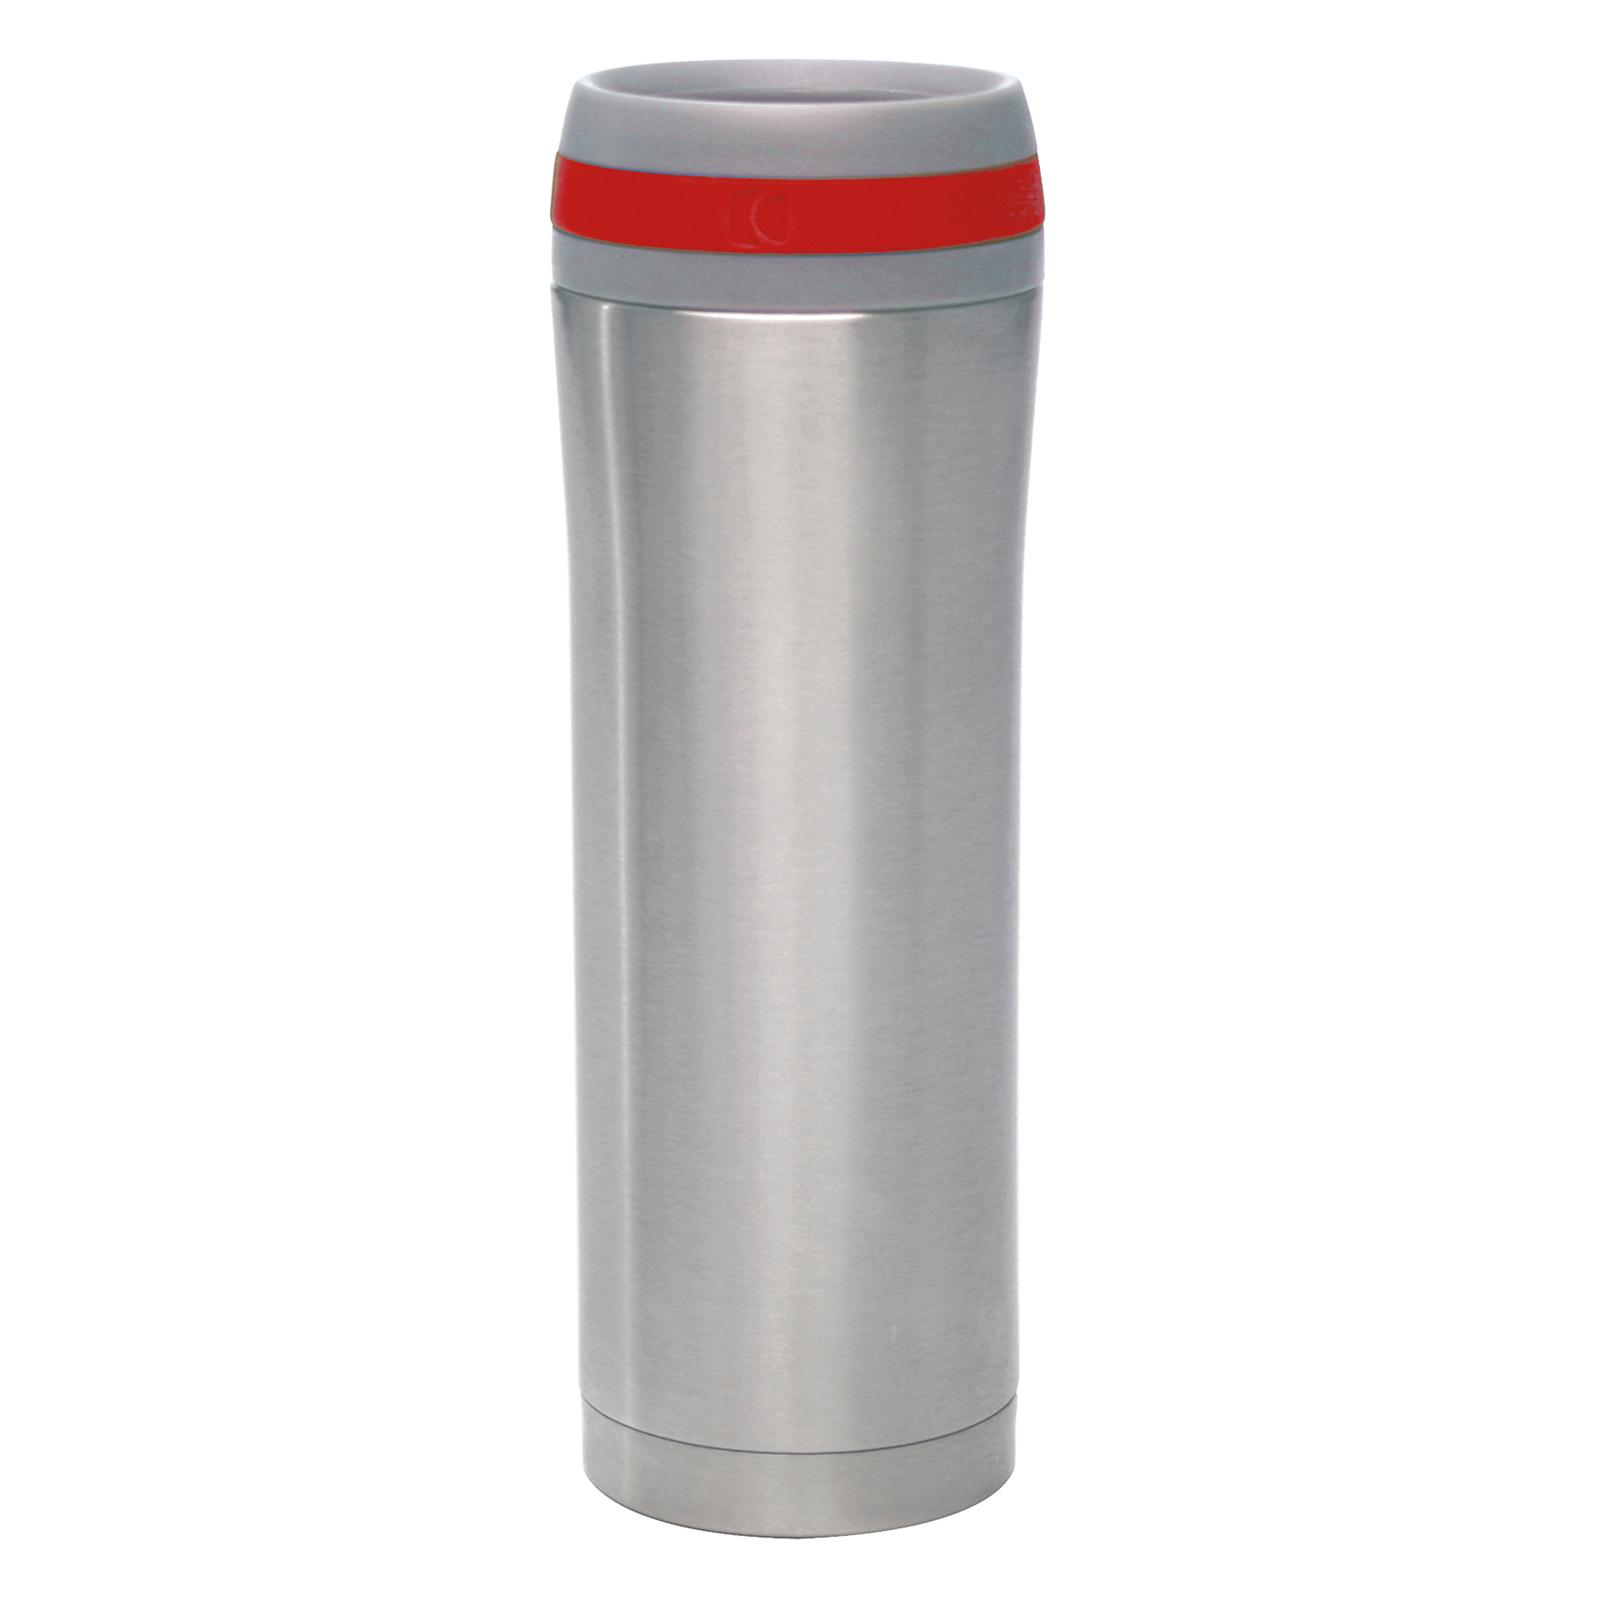 Chantal 15oz. Stainless Steel Travel Mug with Red Band - ...